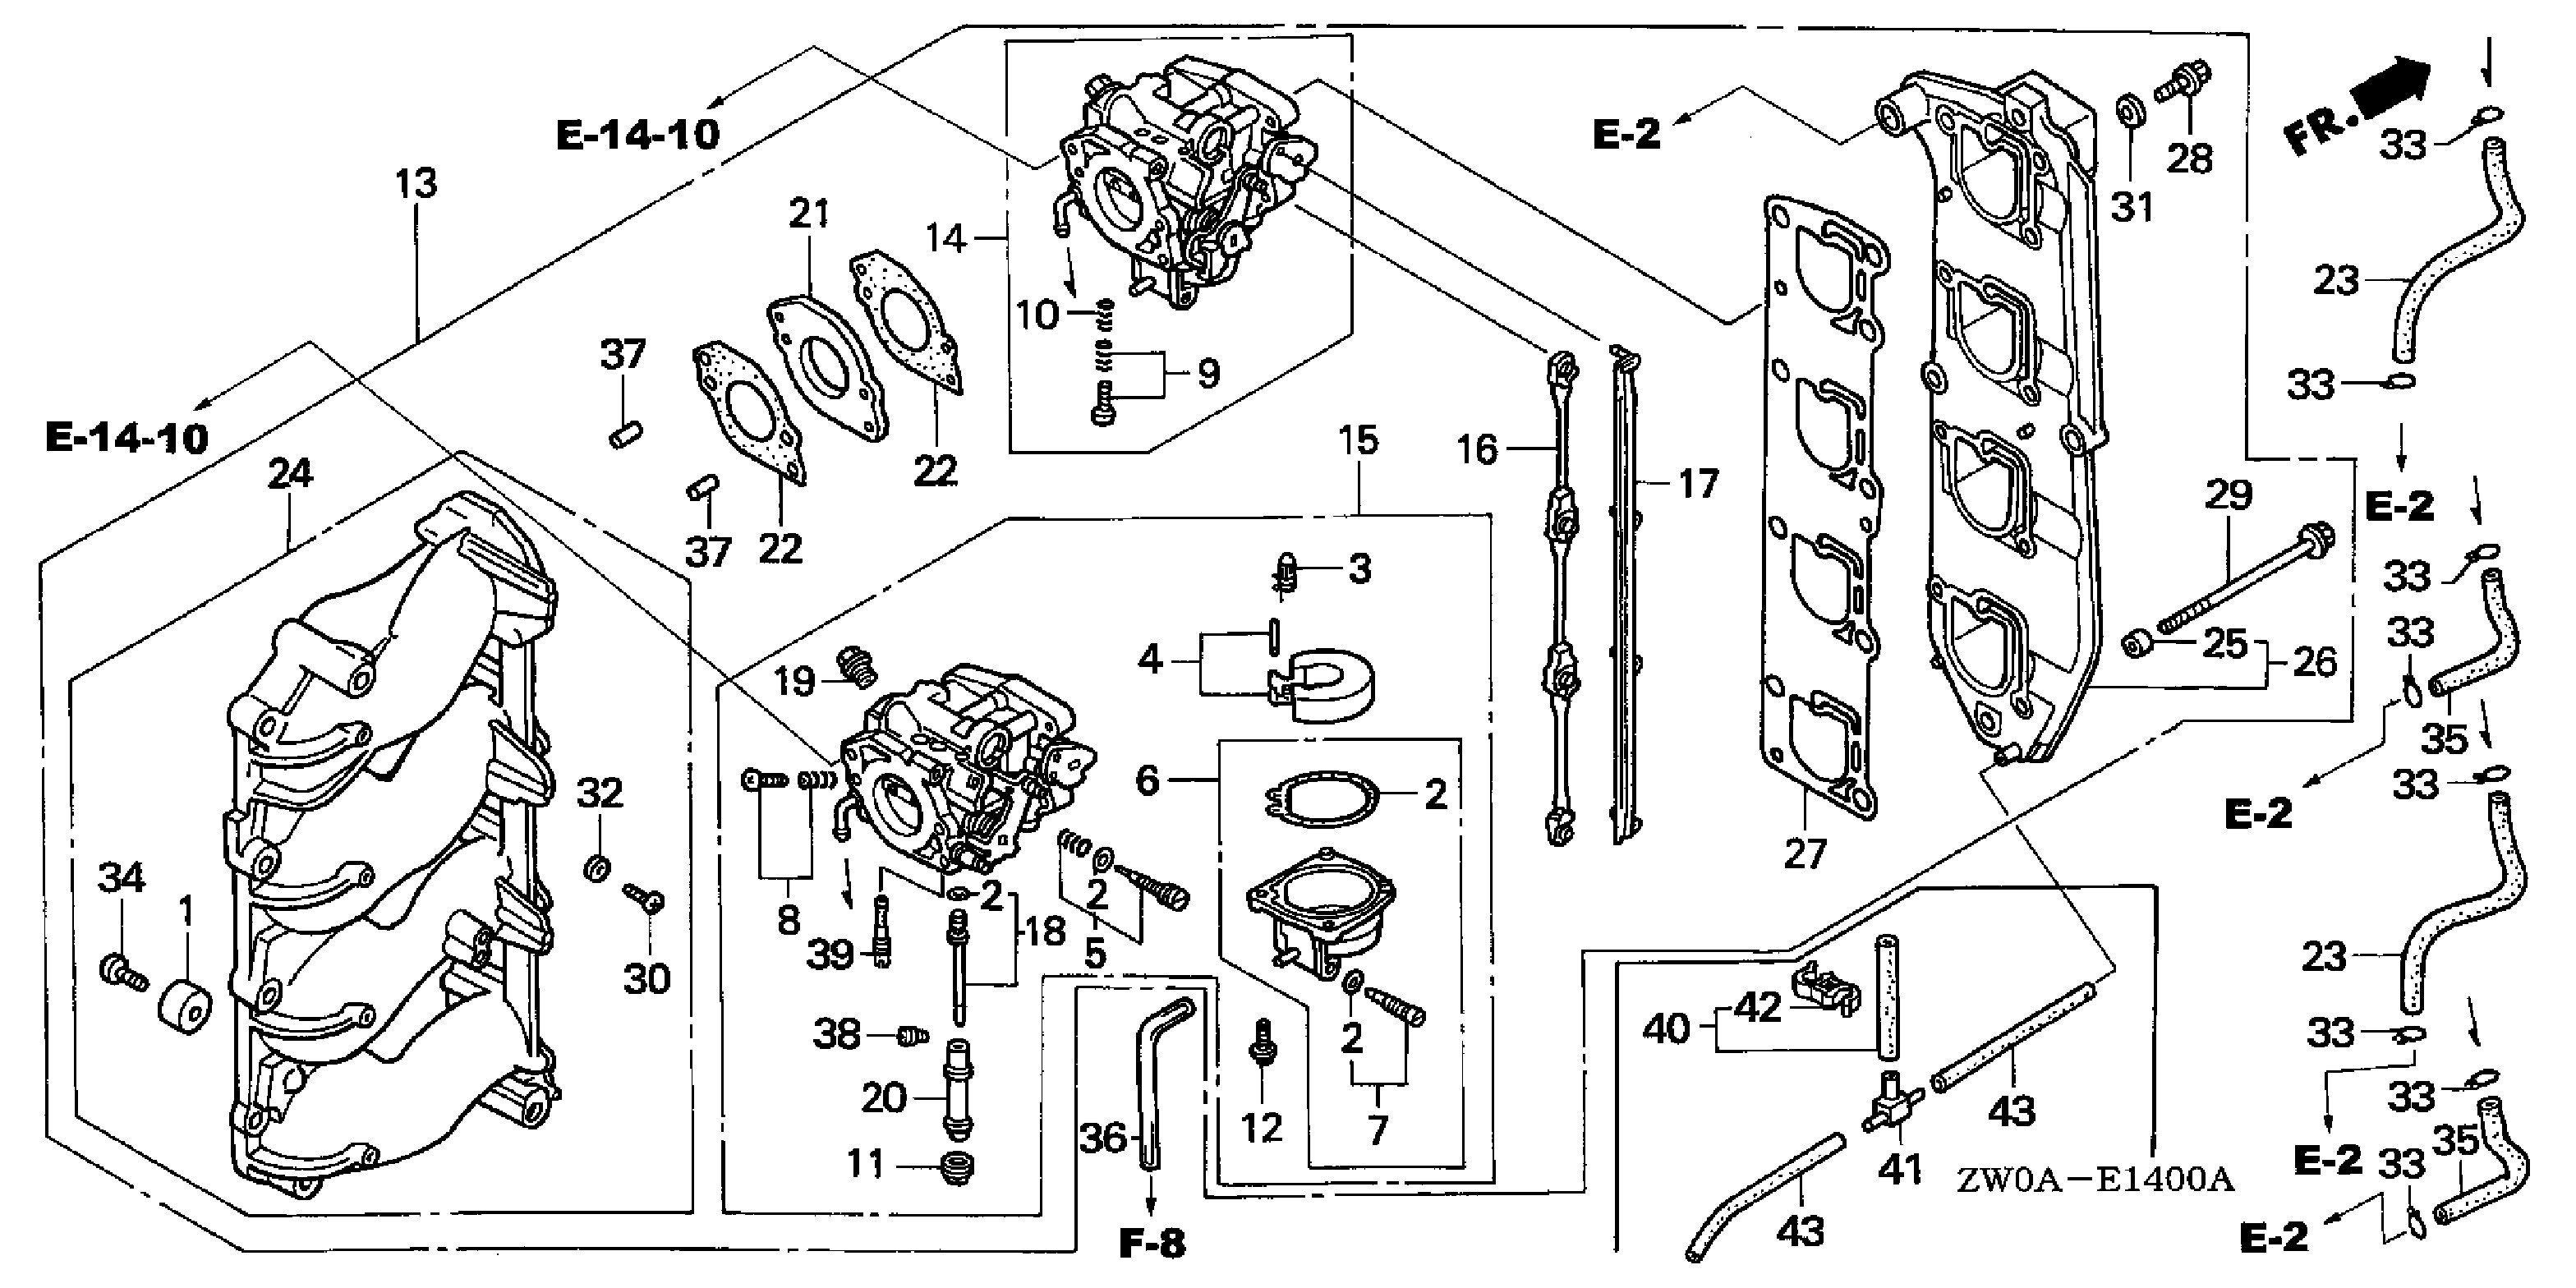 2009-10-31_013323_Honda90Carburetors  Mariner Wiring Diagram on fog light, driving light, ford alternator, wire trailer, ignition switch, dc motor, basic electrical, 4 pin relay, limit switch, air compressor, 7 plug trailer, camper trailer, dump trailer,